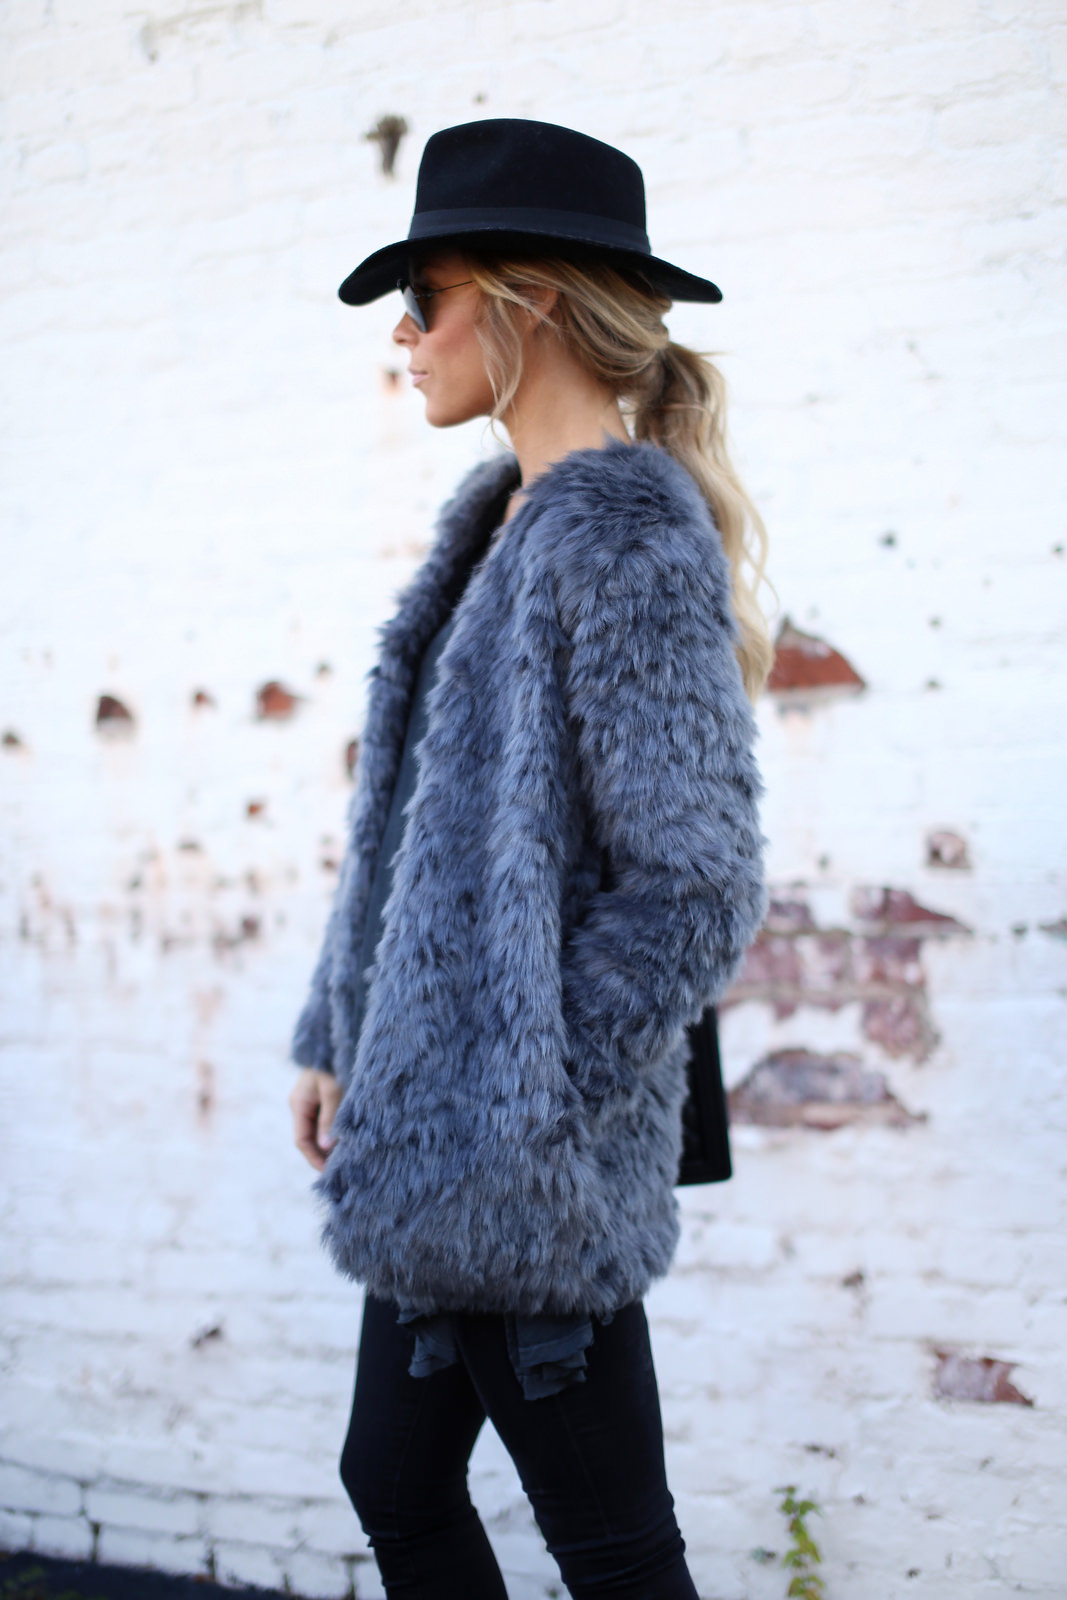 Fluffy Coats For Winter... Here Are Some Of The Best Ones - Just The Design